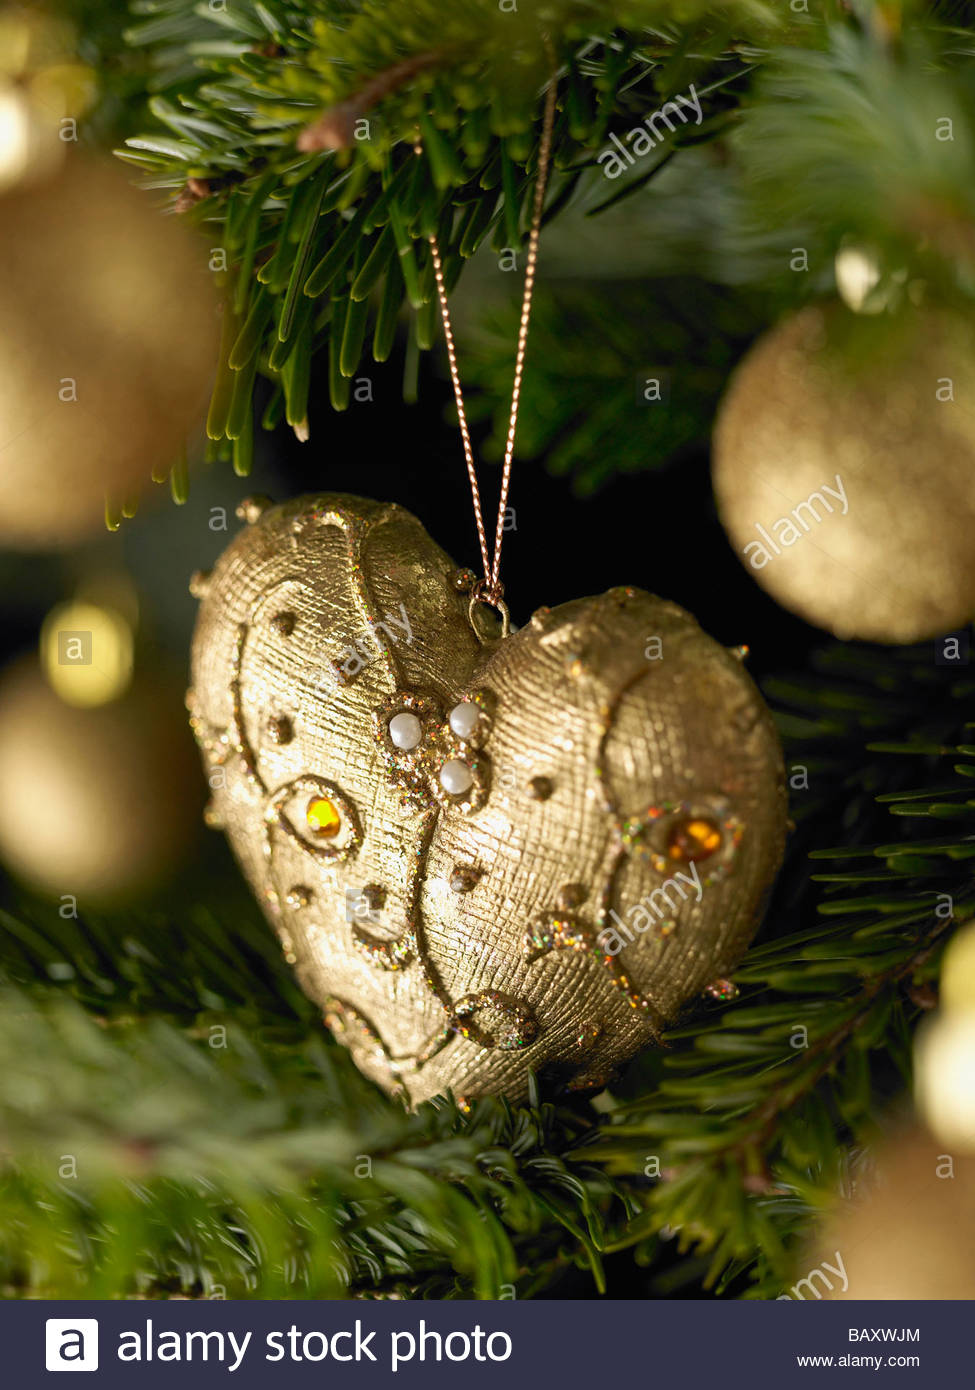 Close up of gold Christmas ornaments on tree - Stock Image